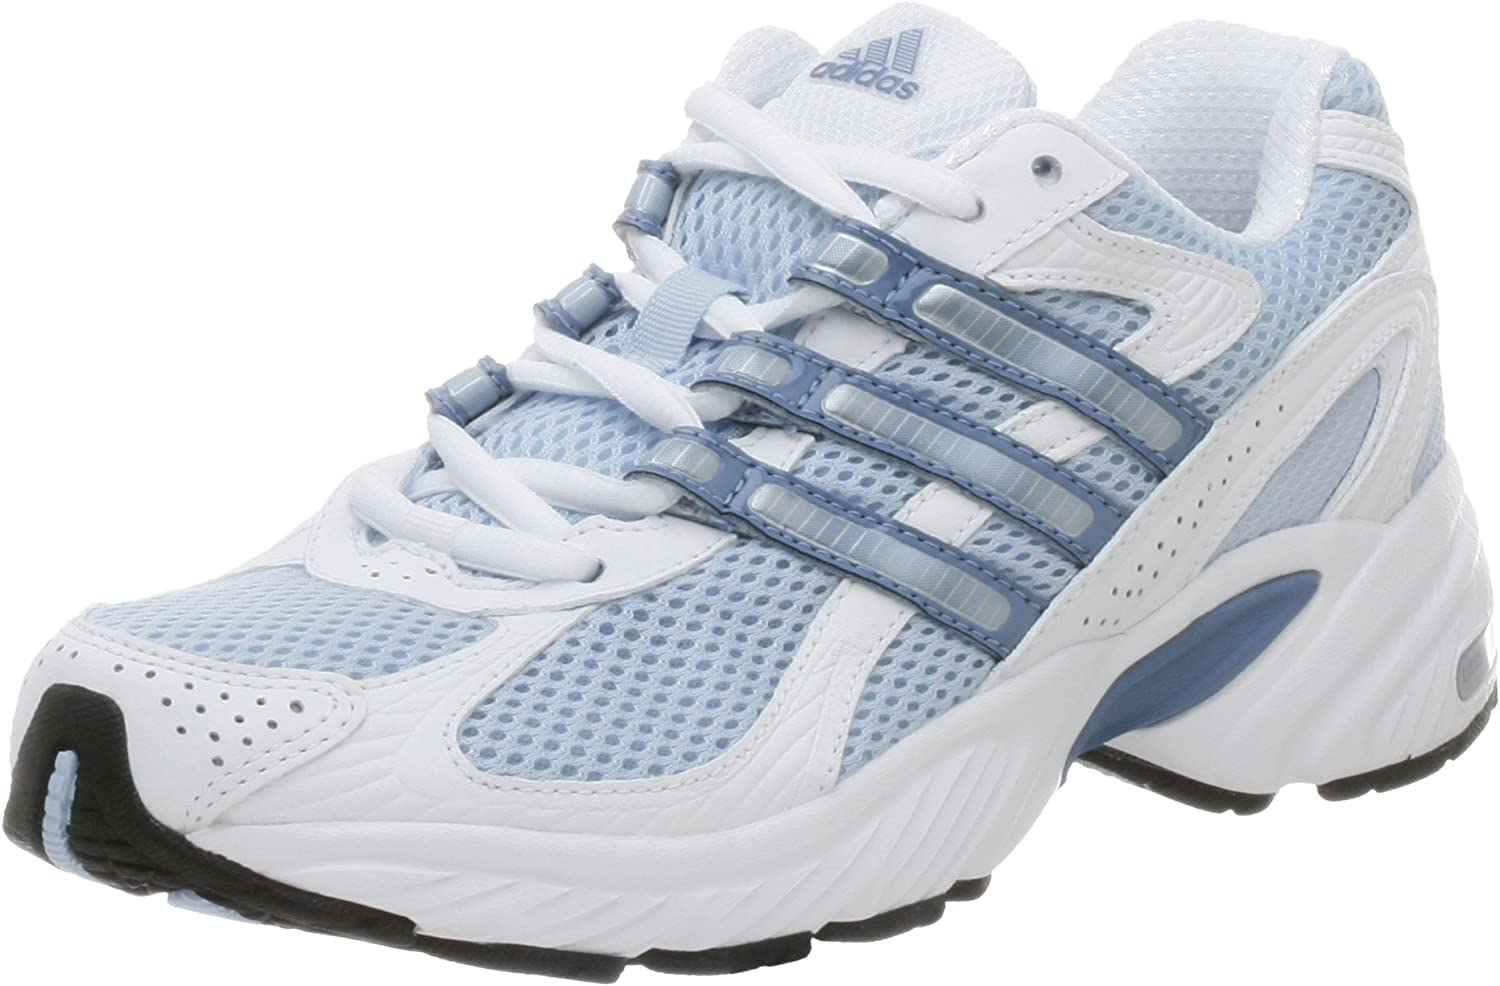 Adidas Women's Fortitude 2 Running shoes